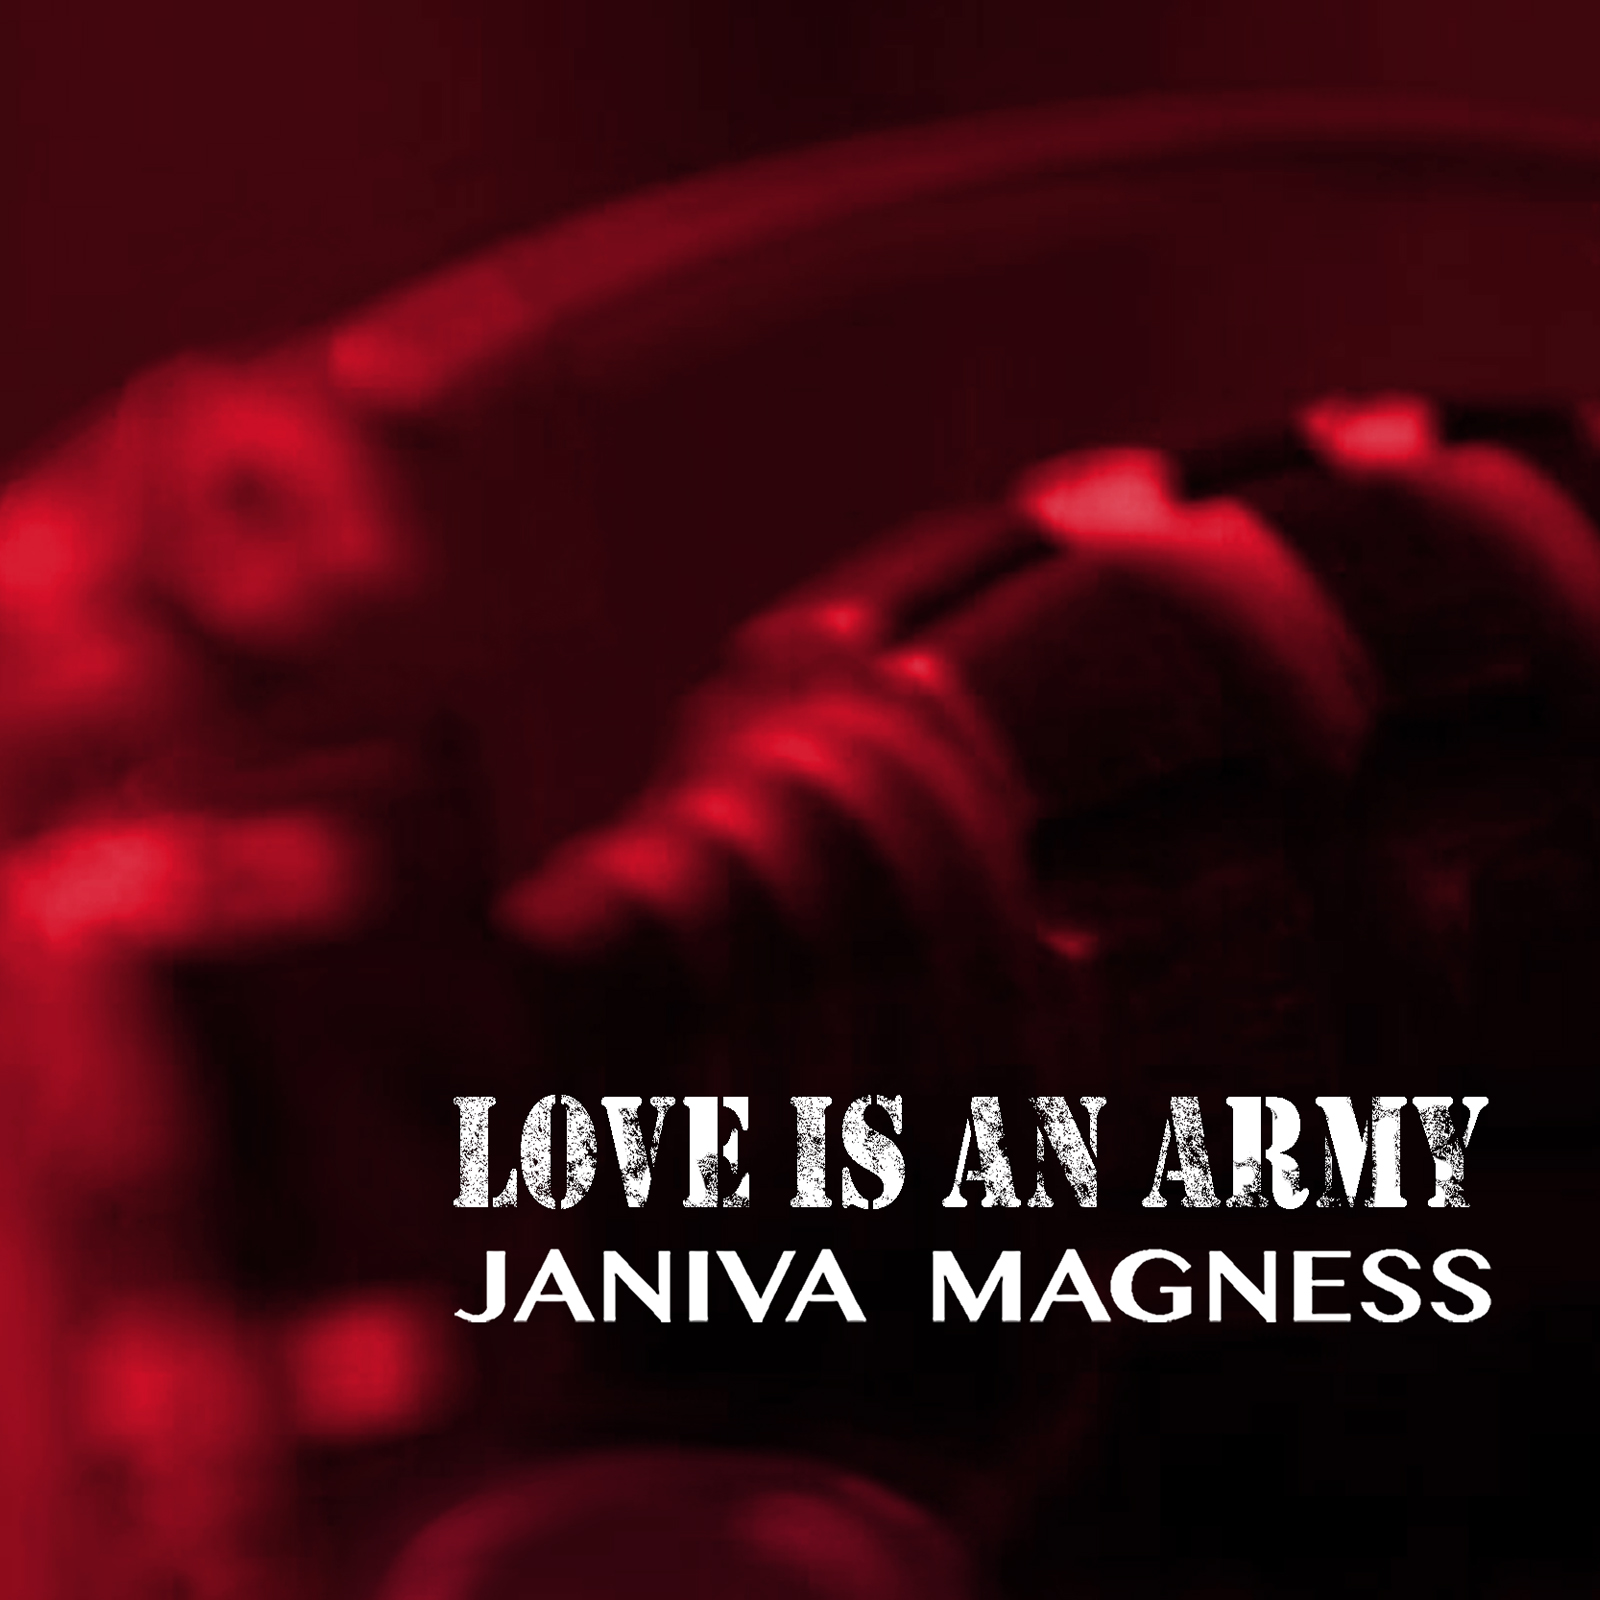 Love Is An Army - Janiva magnessblue elan recordsfebruary 23, 2018produced by dave darlingFEAT. DELBERT MCCLINTON, RUSTY YOUNG (POCO), CHARLIE MUSSELWHITE, COURTNEY HARTMAN (DELLA MAE), AND CEDRIC BURNSIDE